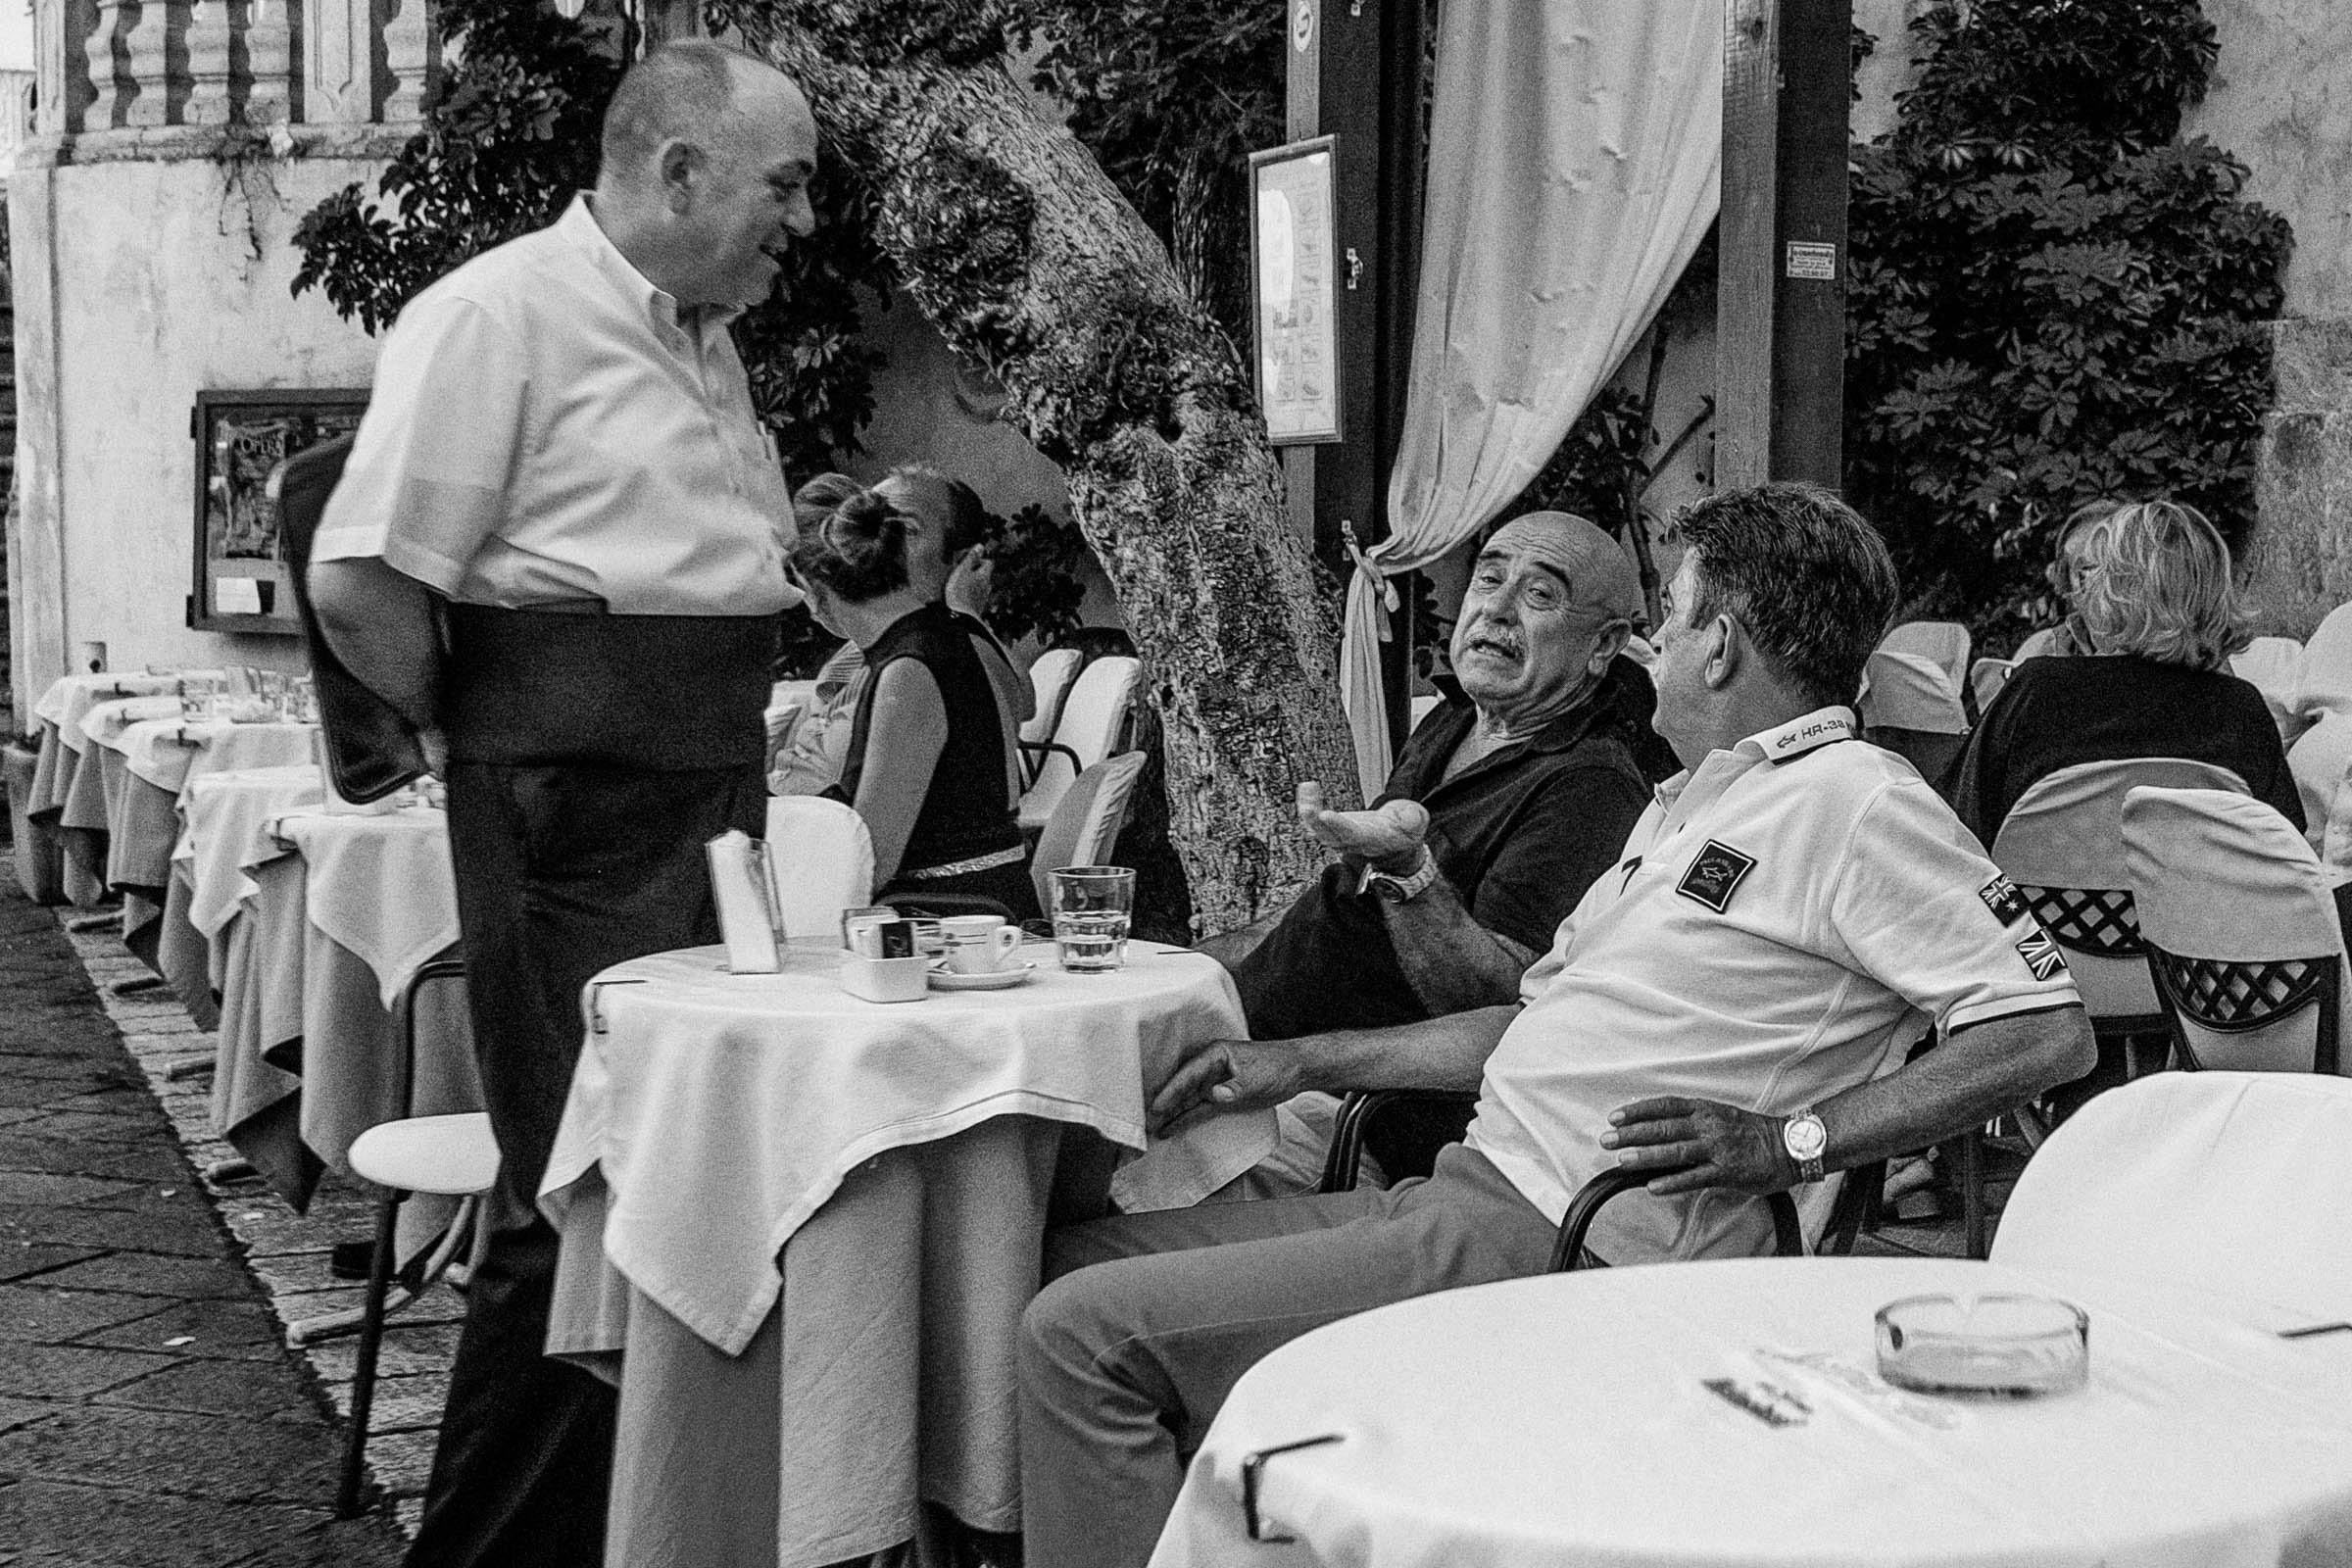 Waiter and clients in Taormina